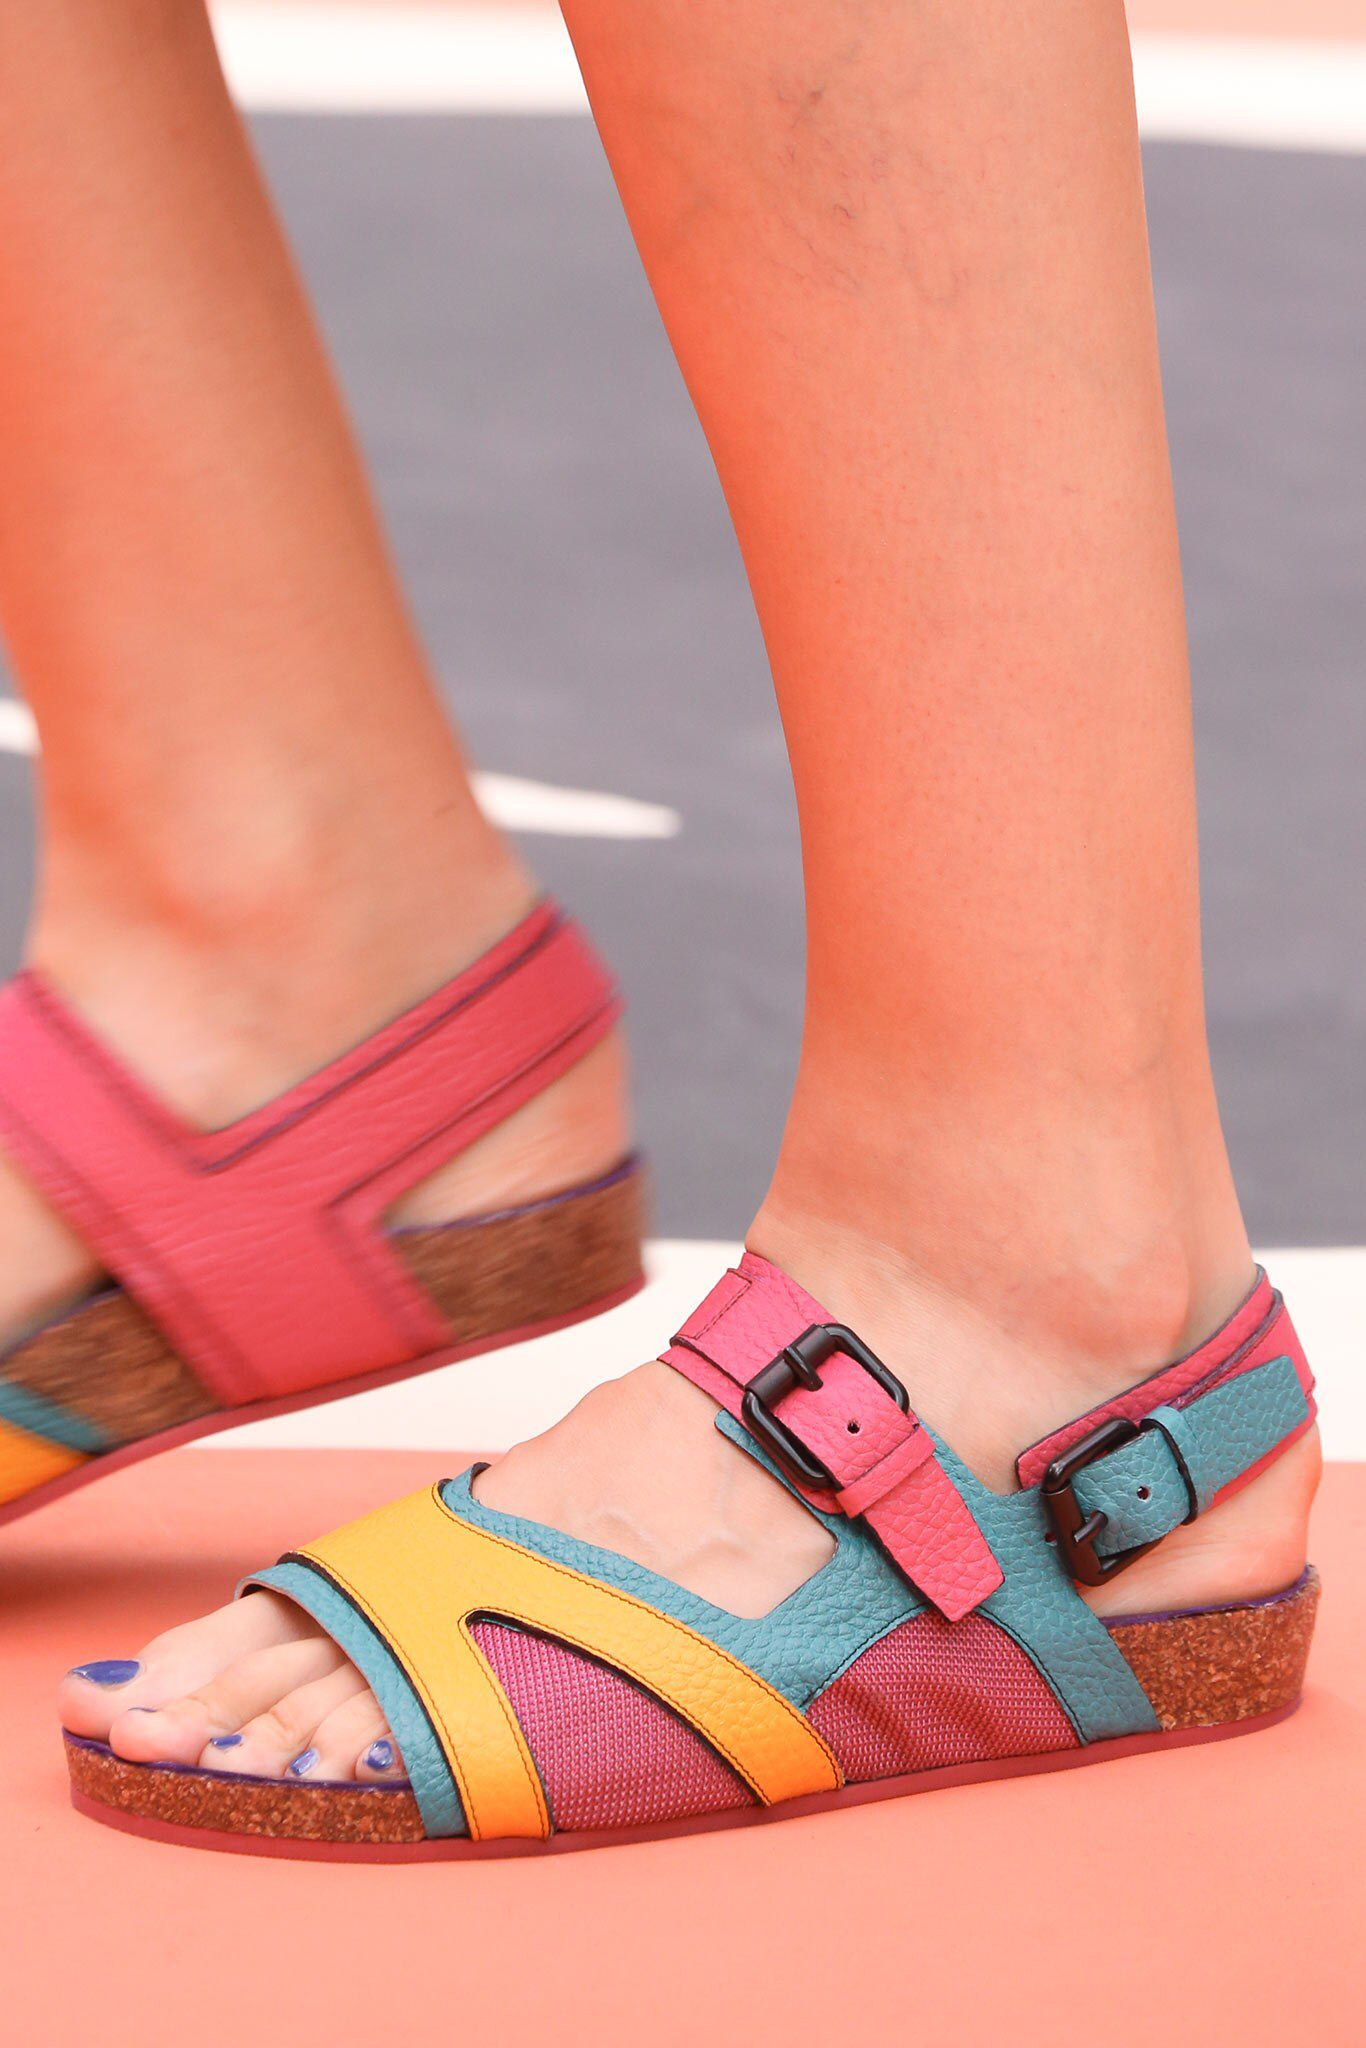 Burberry Prorsum Spring 2015 Ready-to-Wear Fashion Show Details